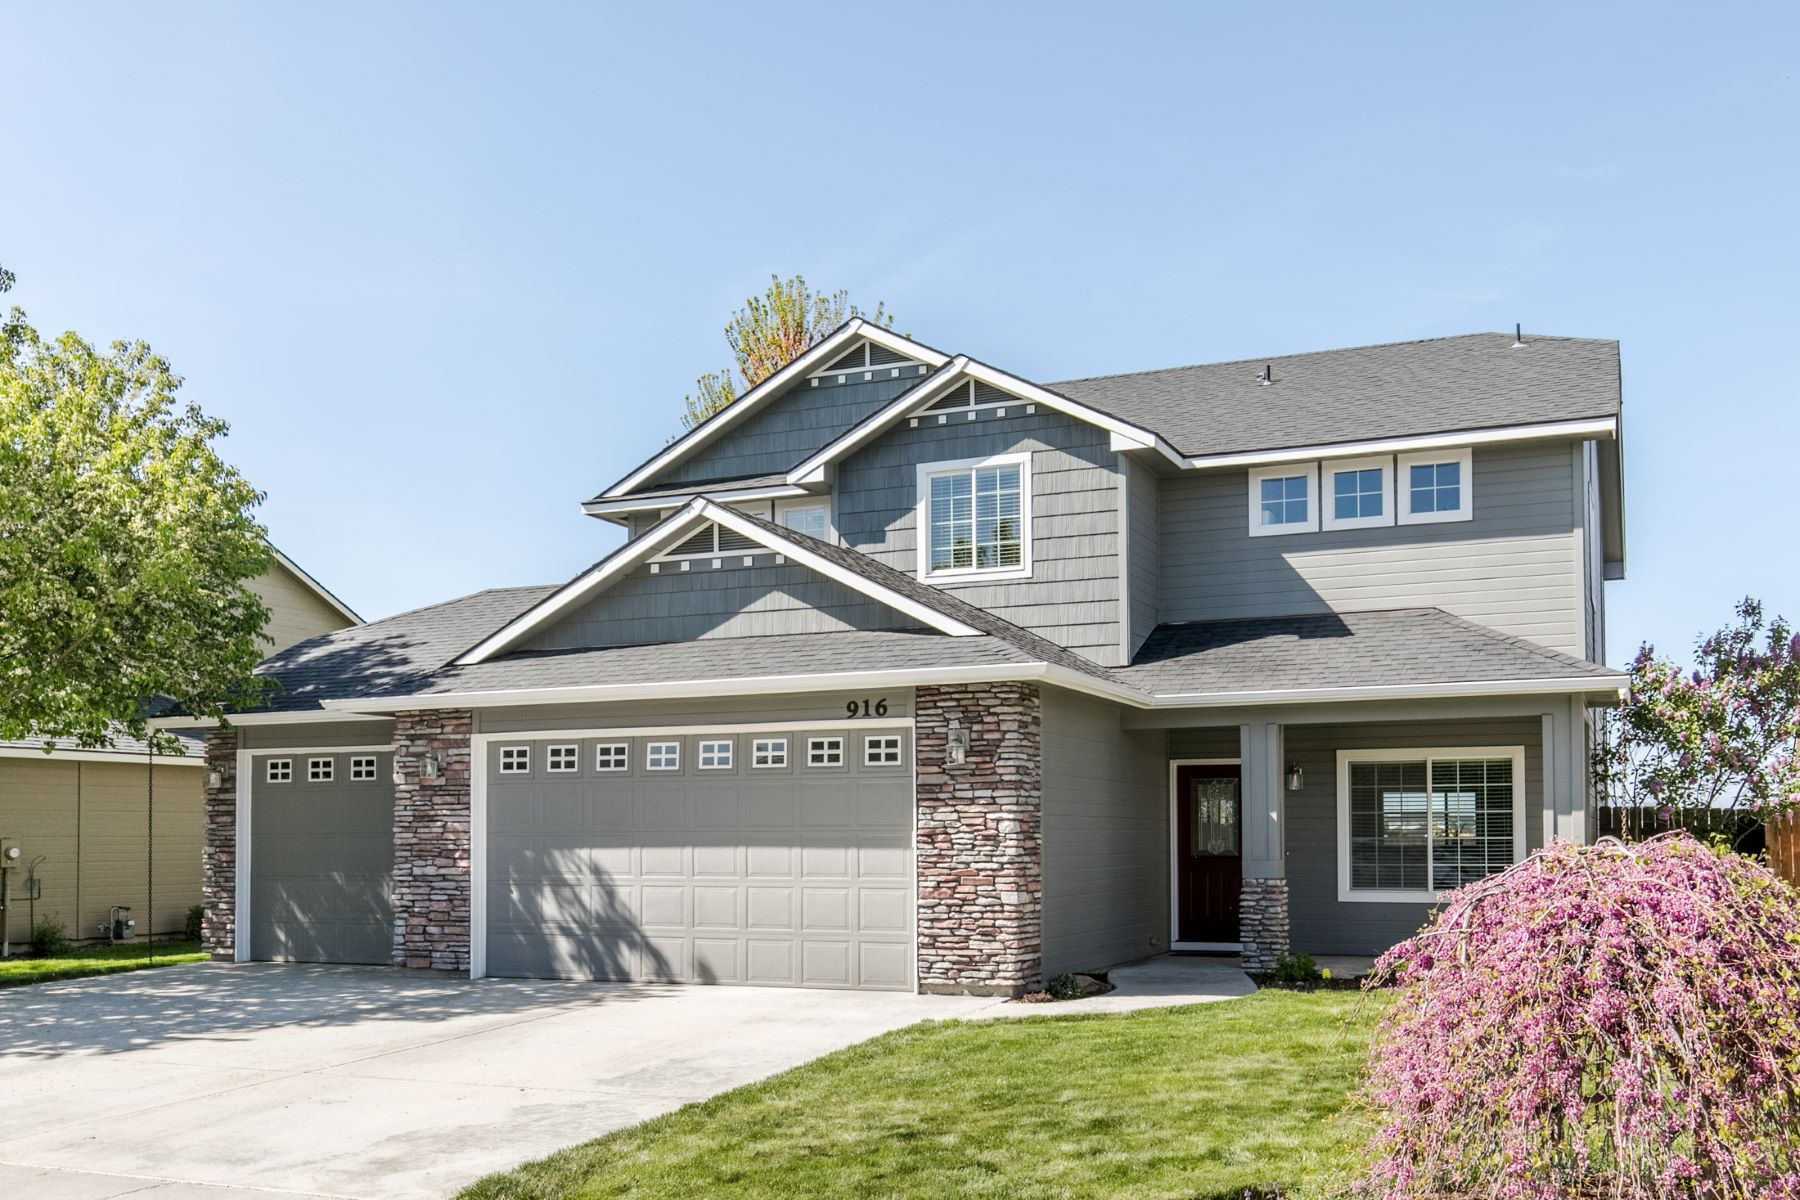 Single Family Home for Active at 916 White Sands, Meridian 916 W White Sands Meridian, Idaho 83646 United States